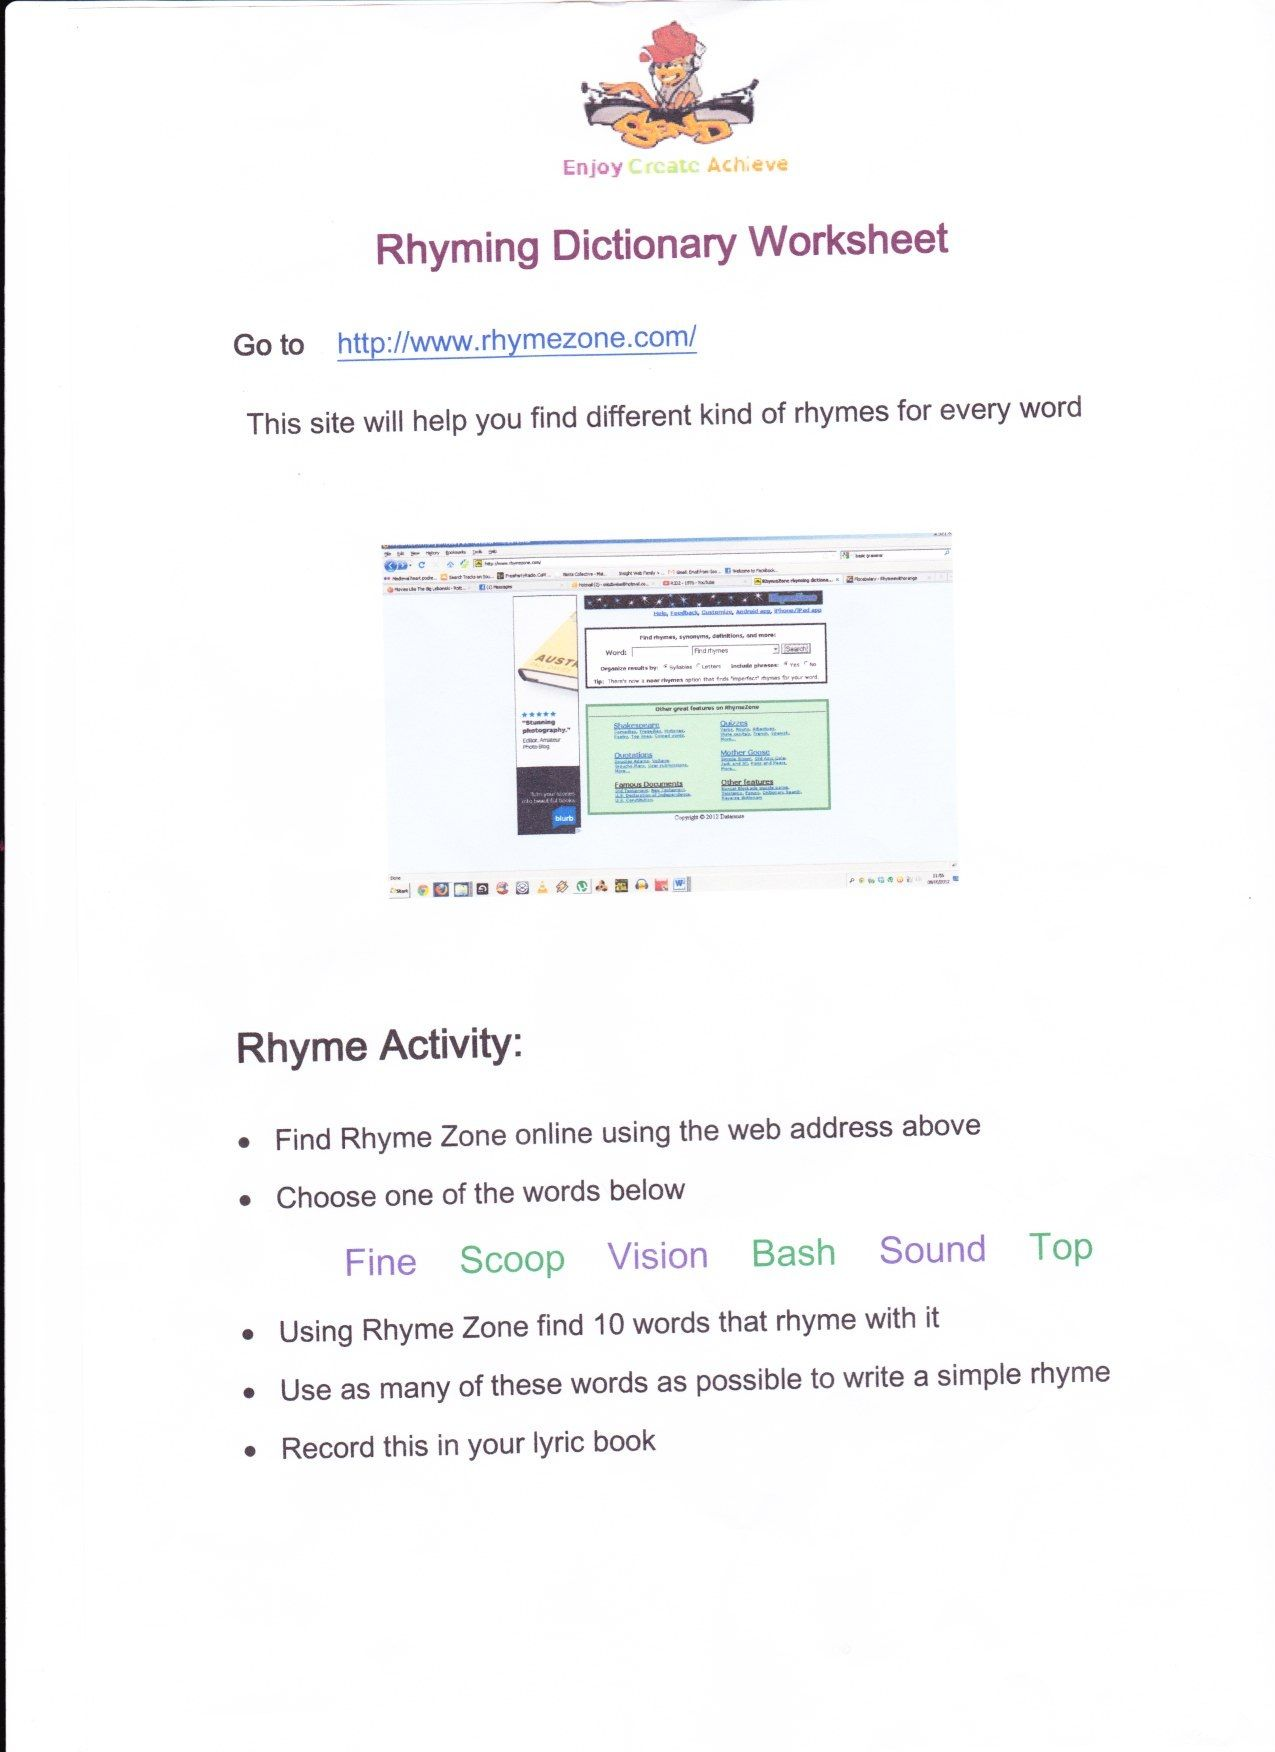 This Is An Online Rhyming Dictionary Worksheet That